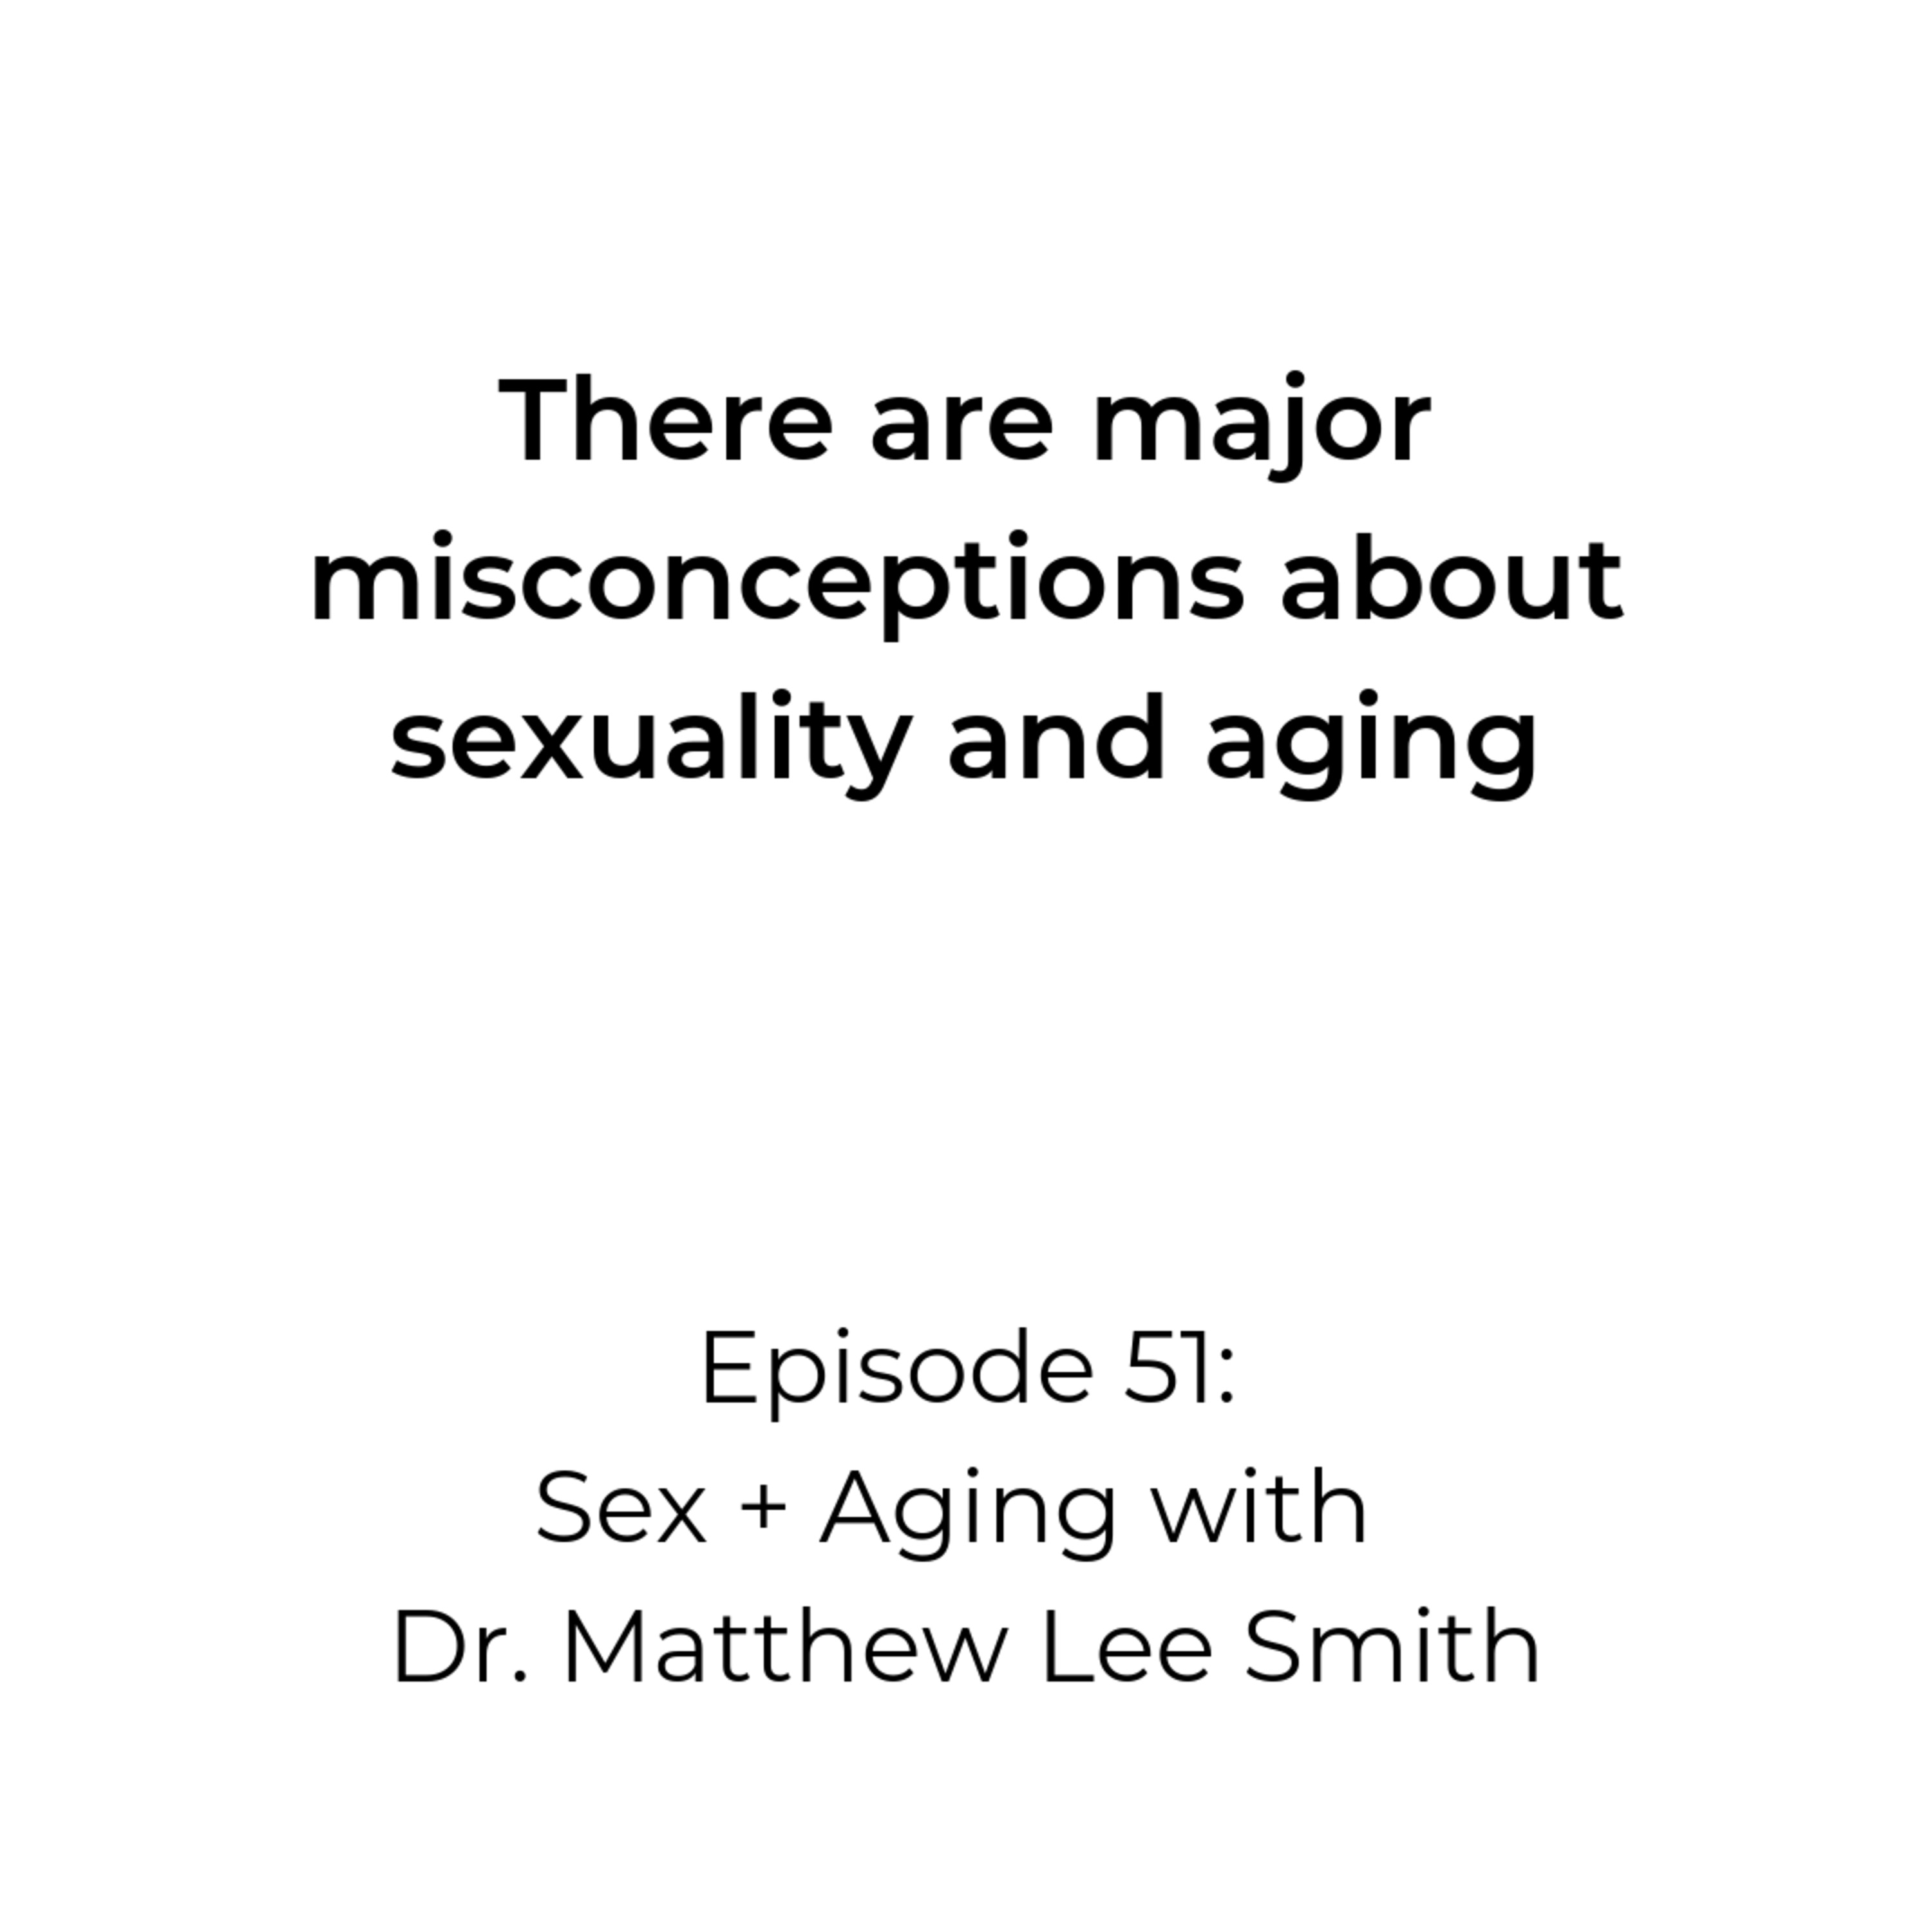 Episode 51: Sex + Aging with Dr. Matthew Lee Smith